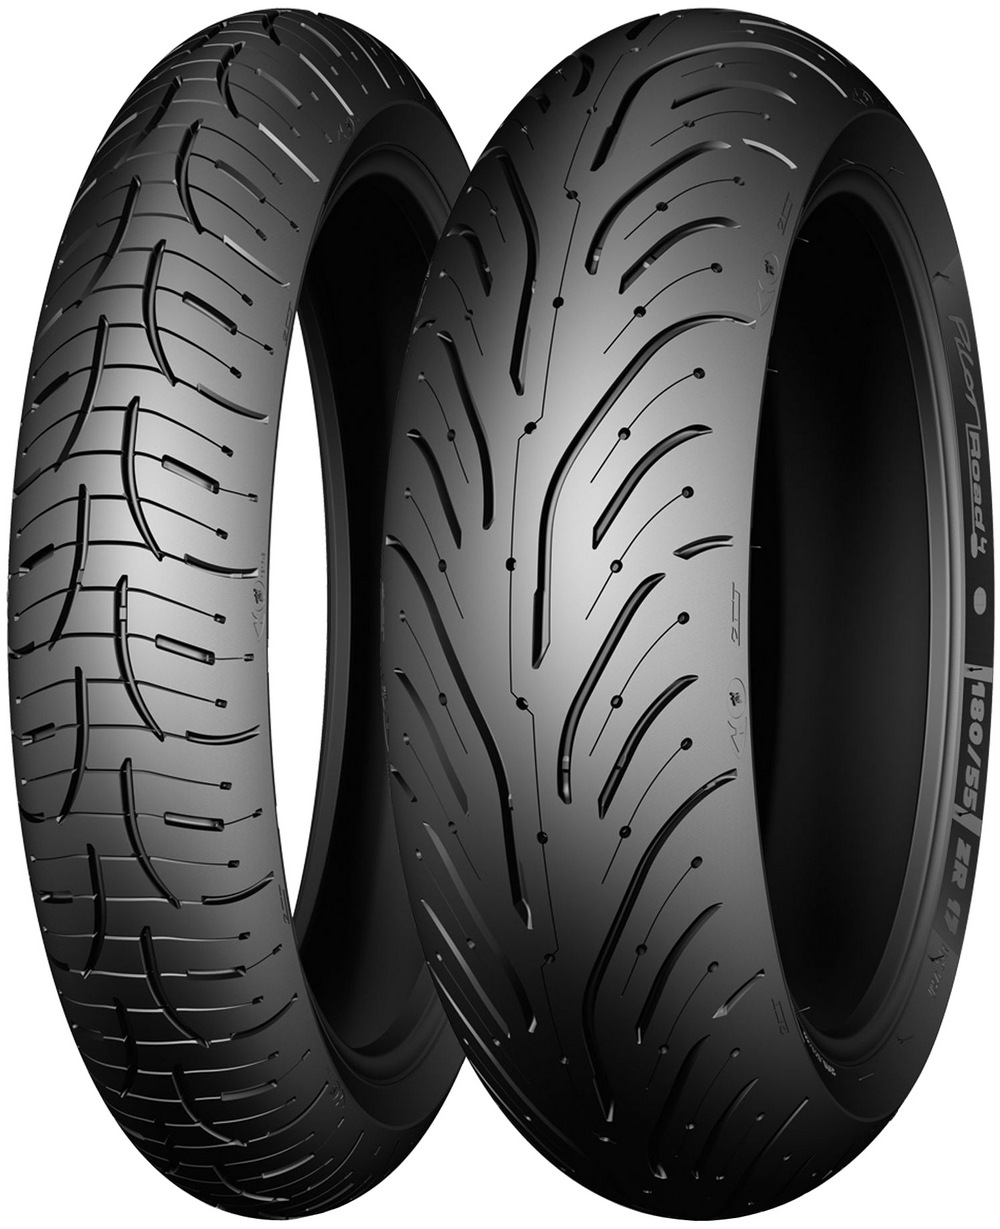 Мотошина задняя Michelin Pilot Road 4 180/55R17 73W